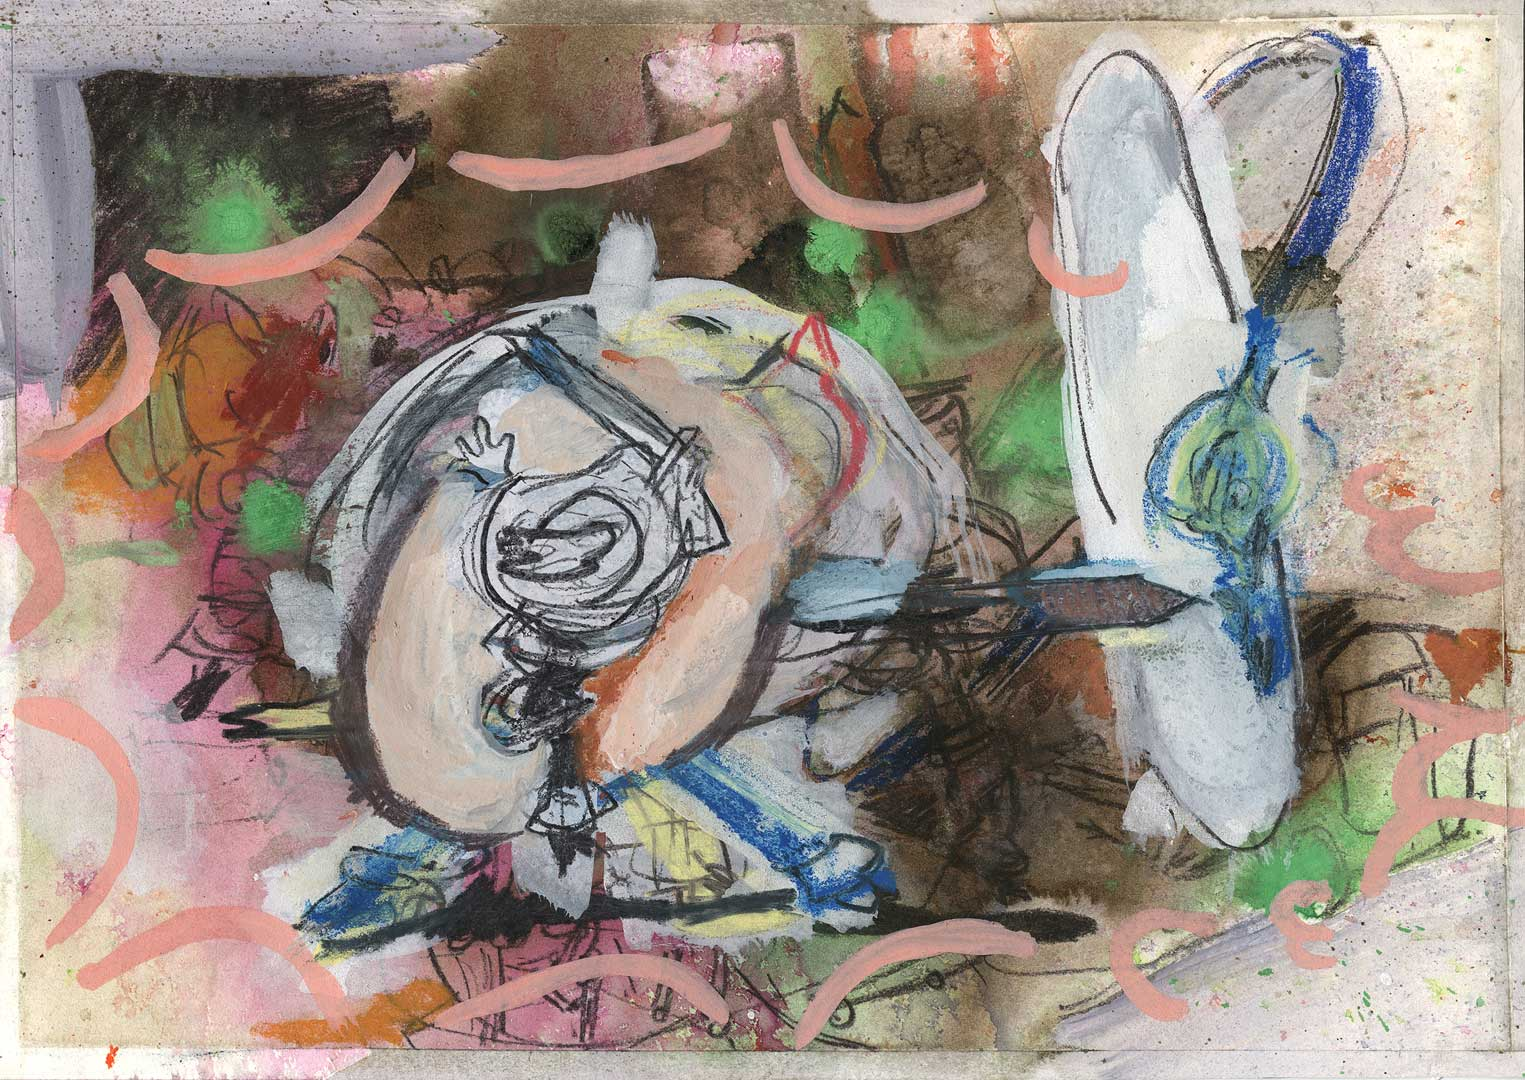 35TRK006M0001 [Silly Symphonies Series] – 21 x 29,7 cm – pastels, ink and acrylics on paper – 2019